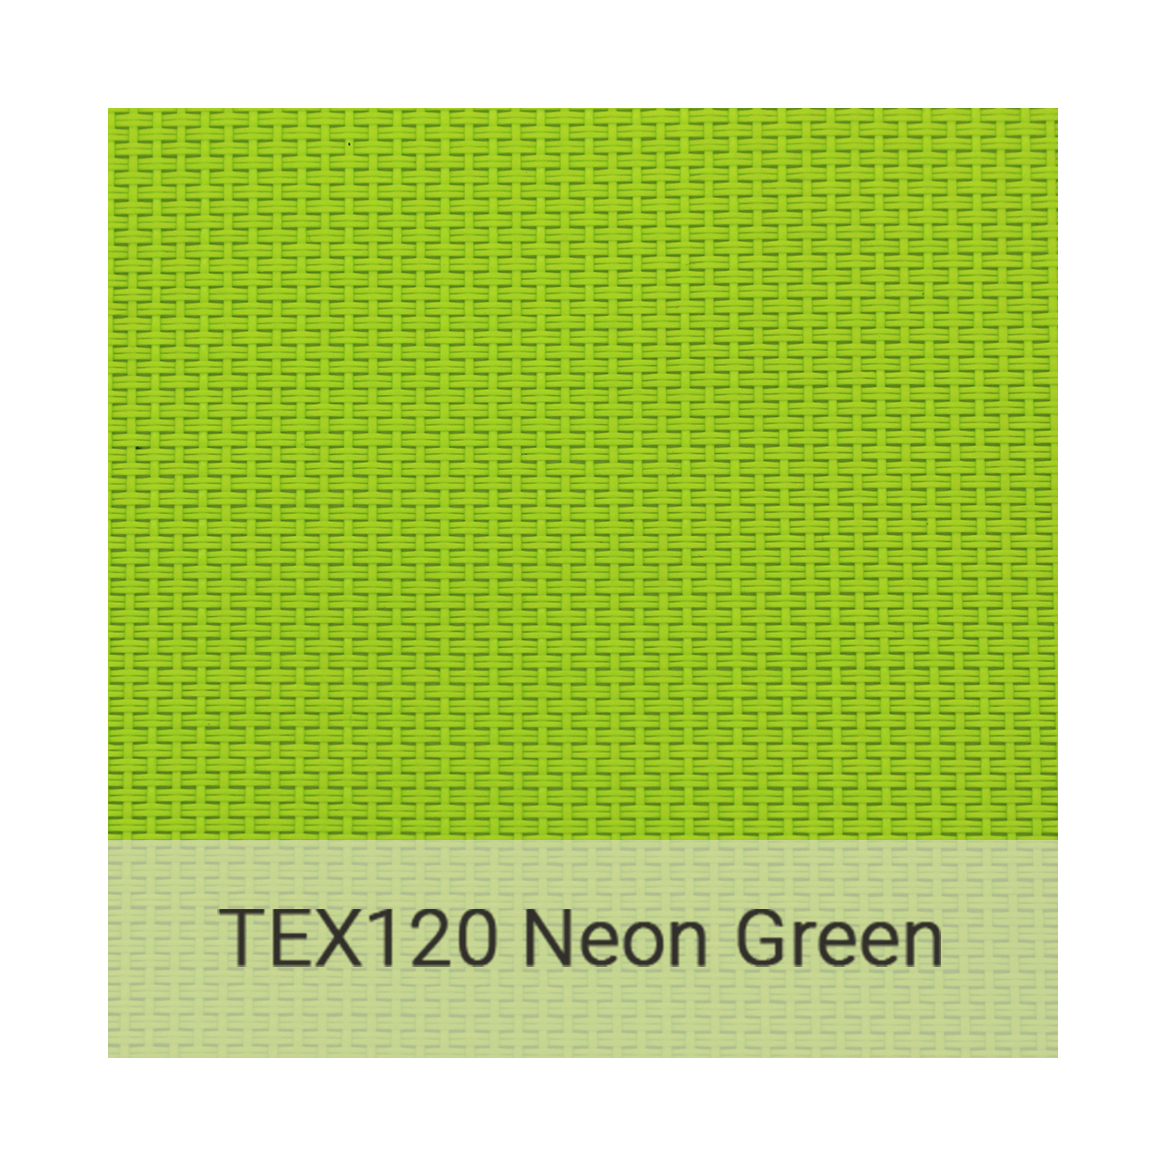 Kingston Casual textiline-tex120-neon-green